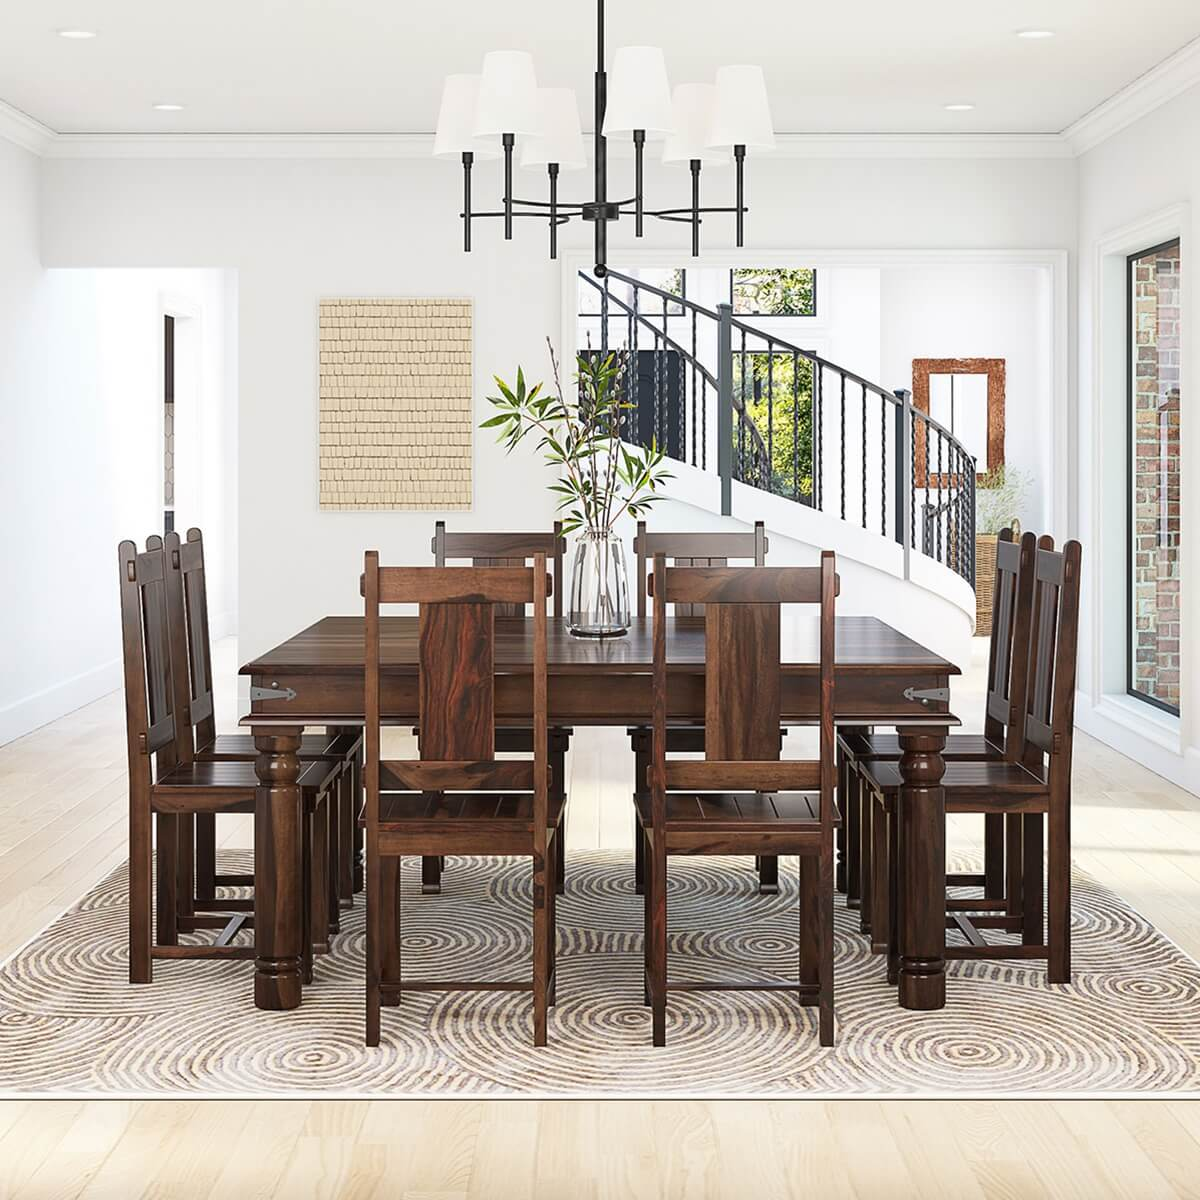 Rustic Dining Room Table Sets: Richmond Rustic Solid Wood Large Square Dining Room Table